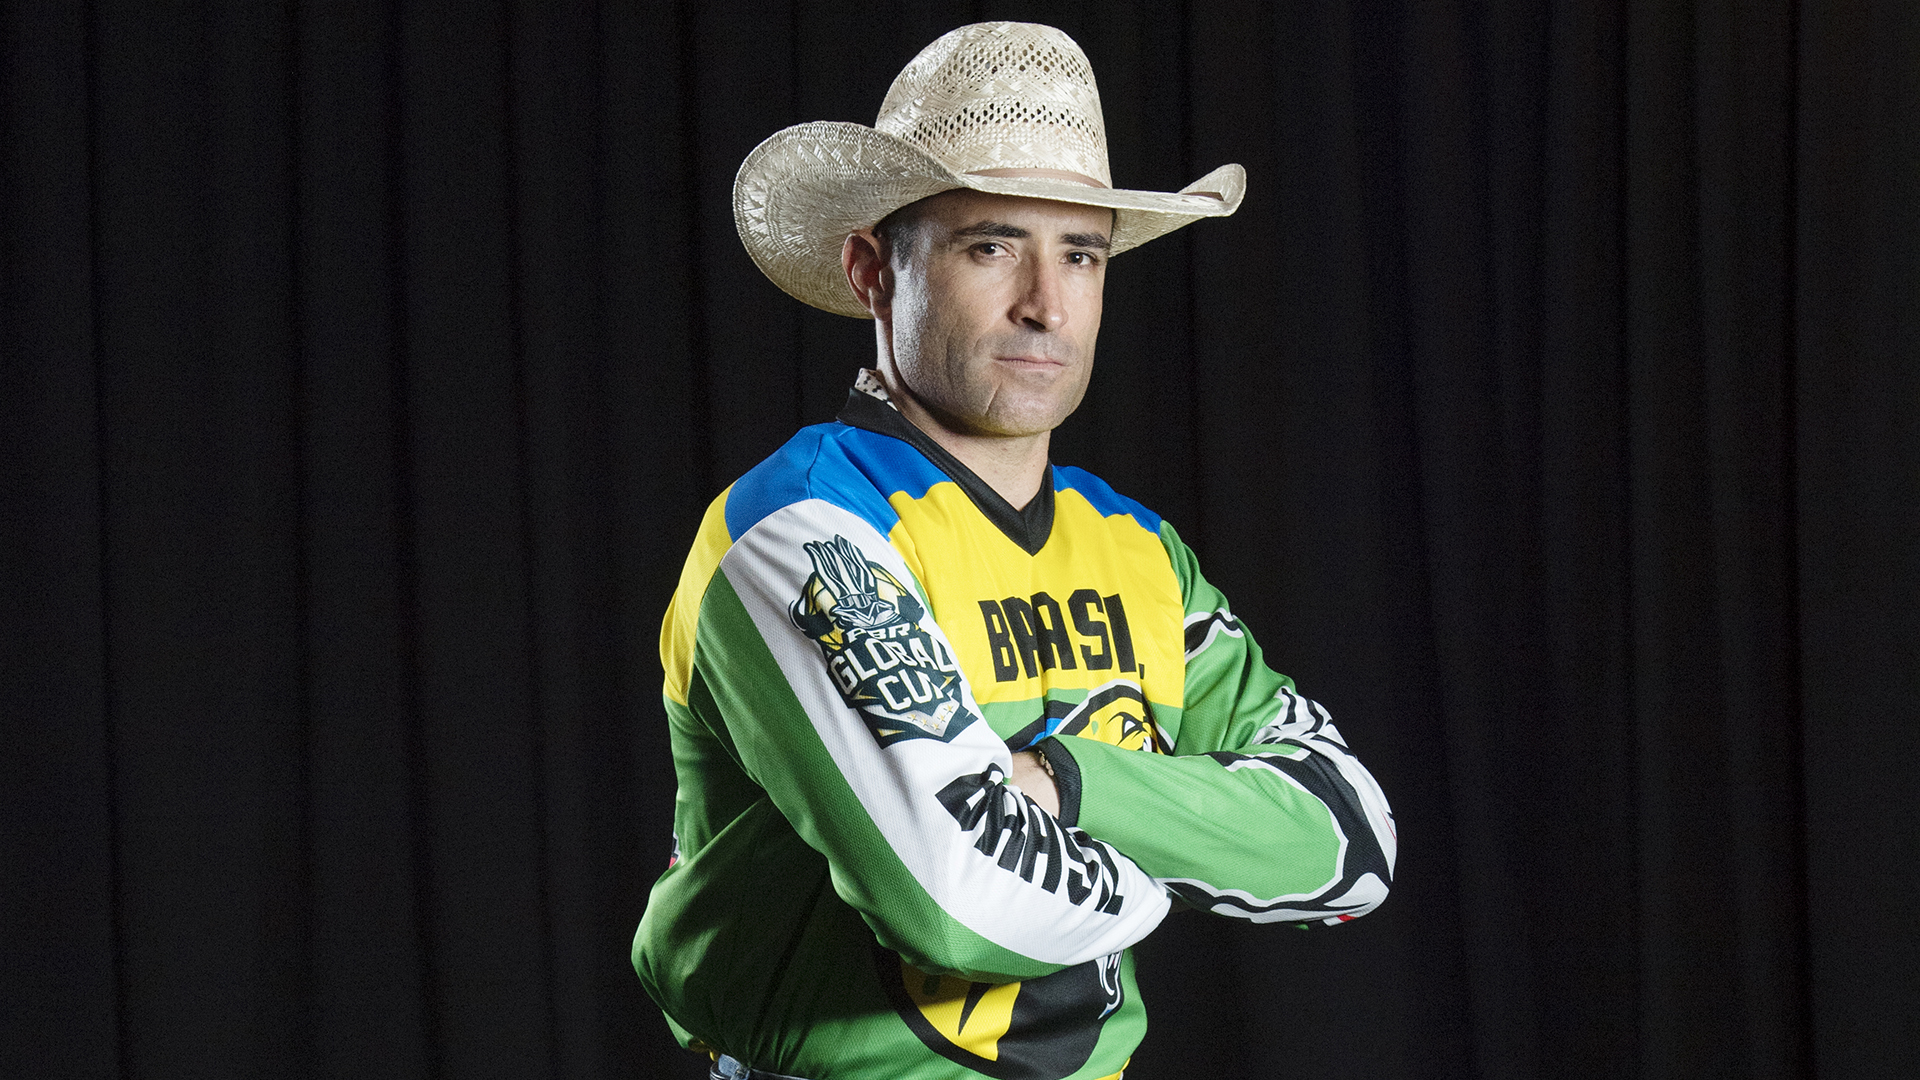 World Champion Guilherme Marchi elevated to head coach of Team Brazil for 2020 PBR Global Cup USA